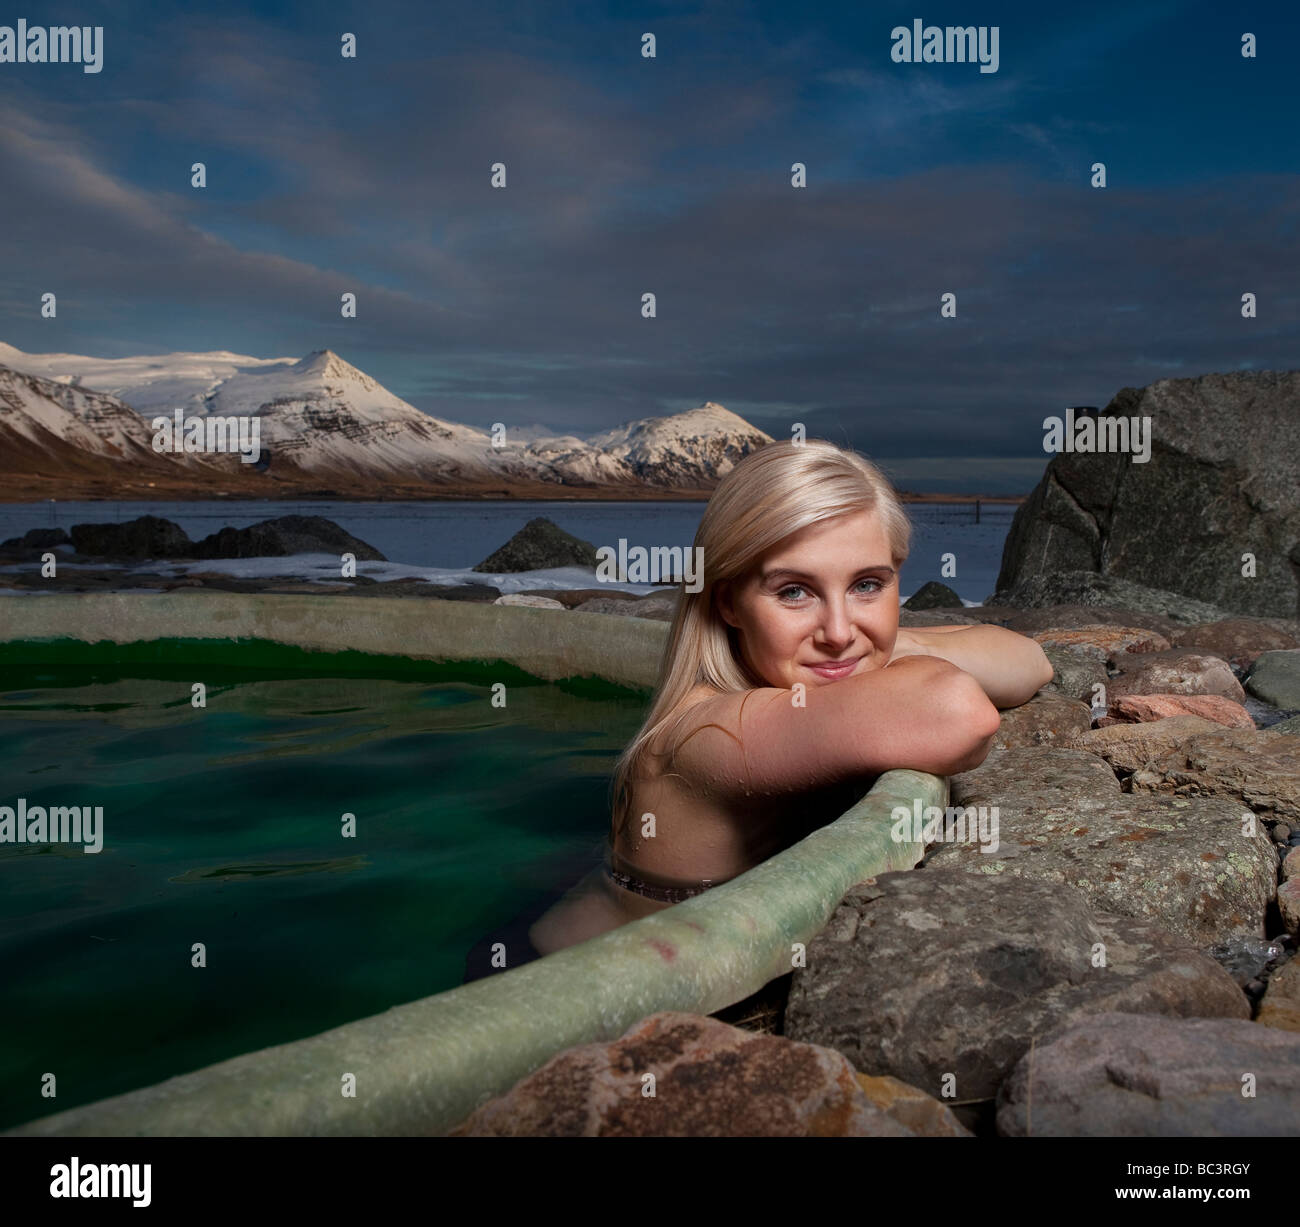 Young Woman in Geothermal Heated Hot Tub, Hornafjordur, Eastern Iceland - Stock Image